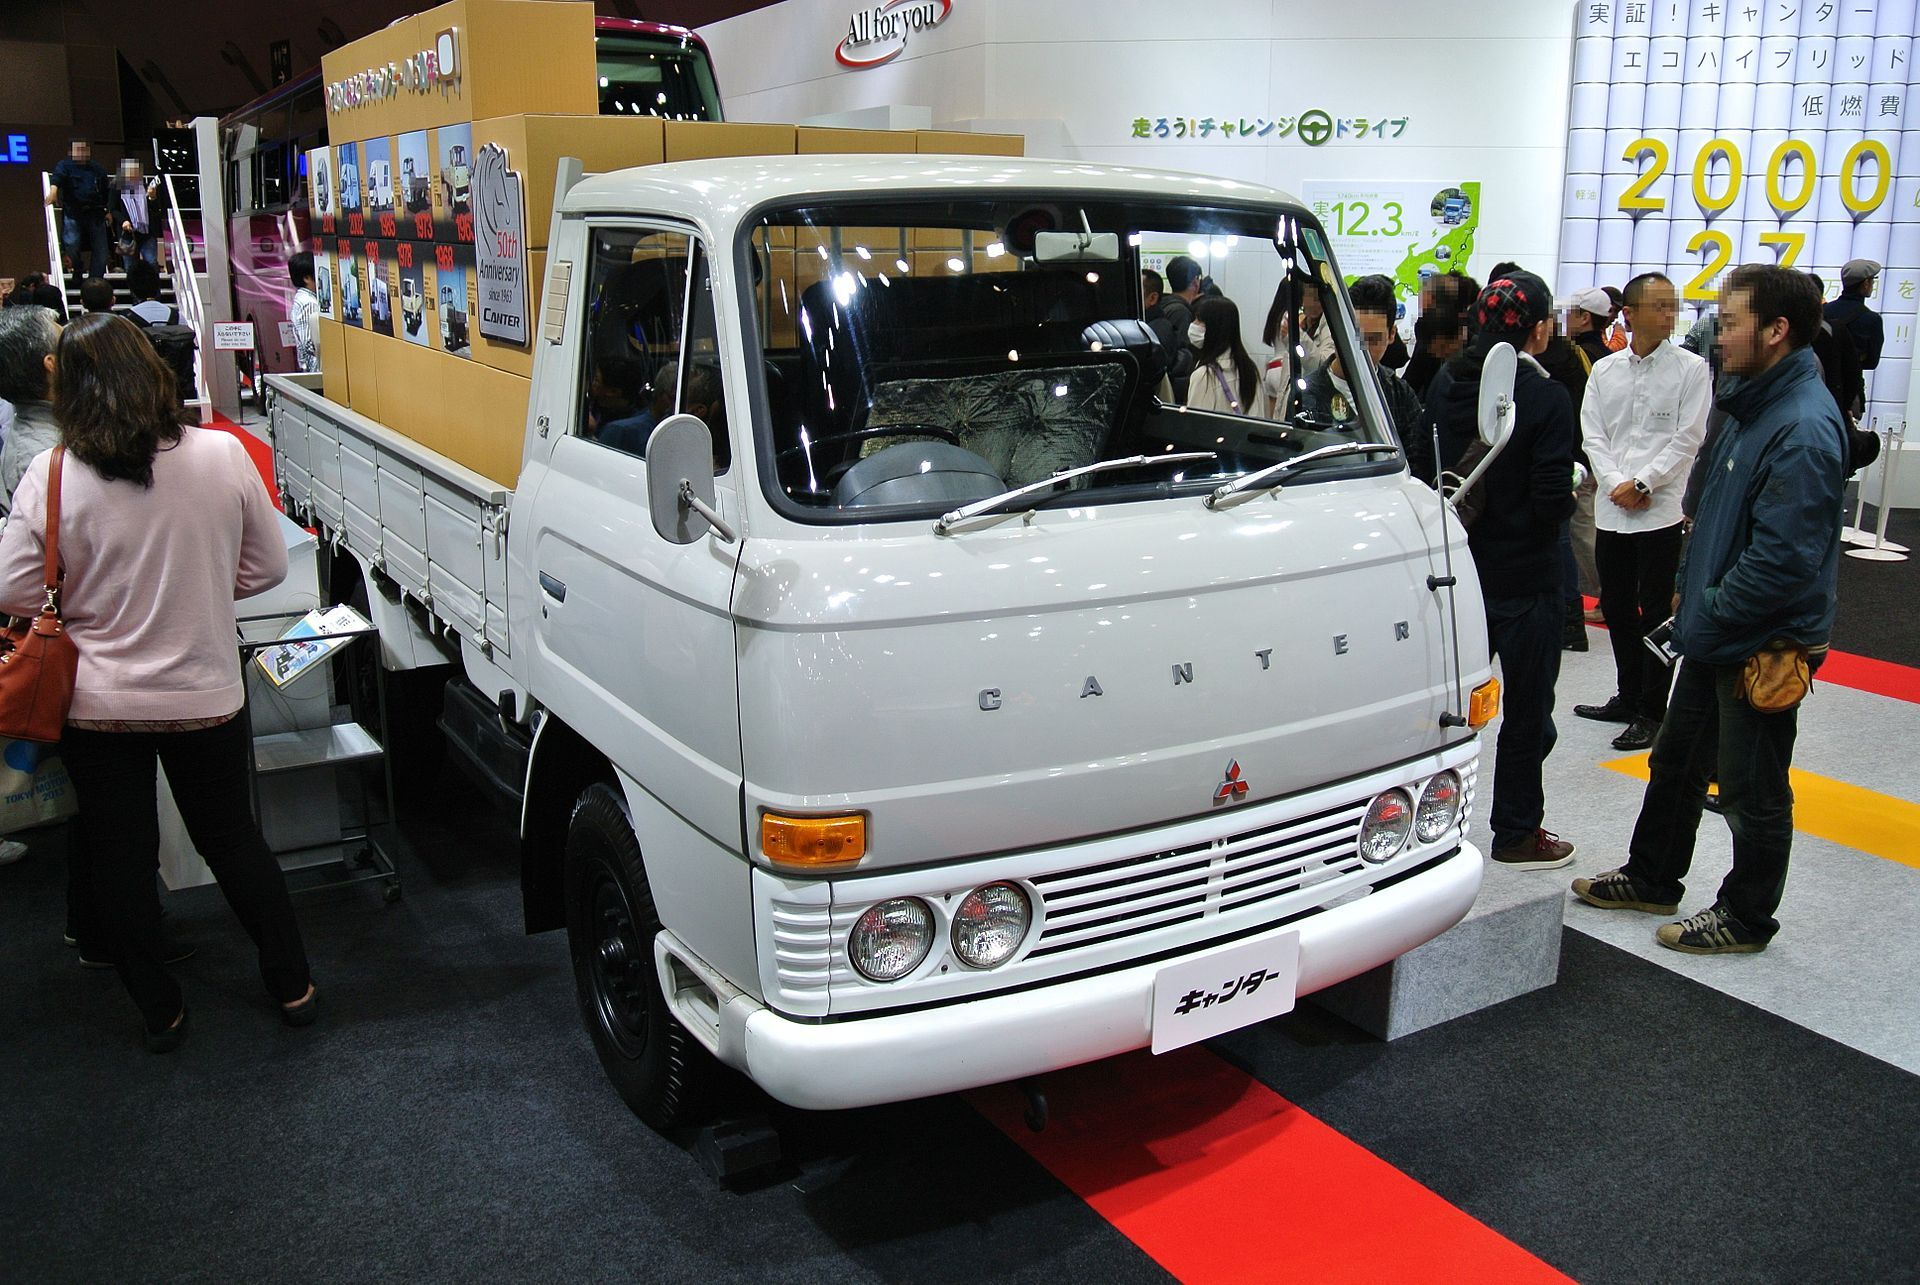 Canter truck sale double cabin 4wd japan import jpn car - Mitsubishi Fuso Canter Mitsubishi Fuso Truck And